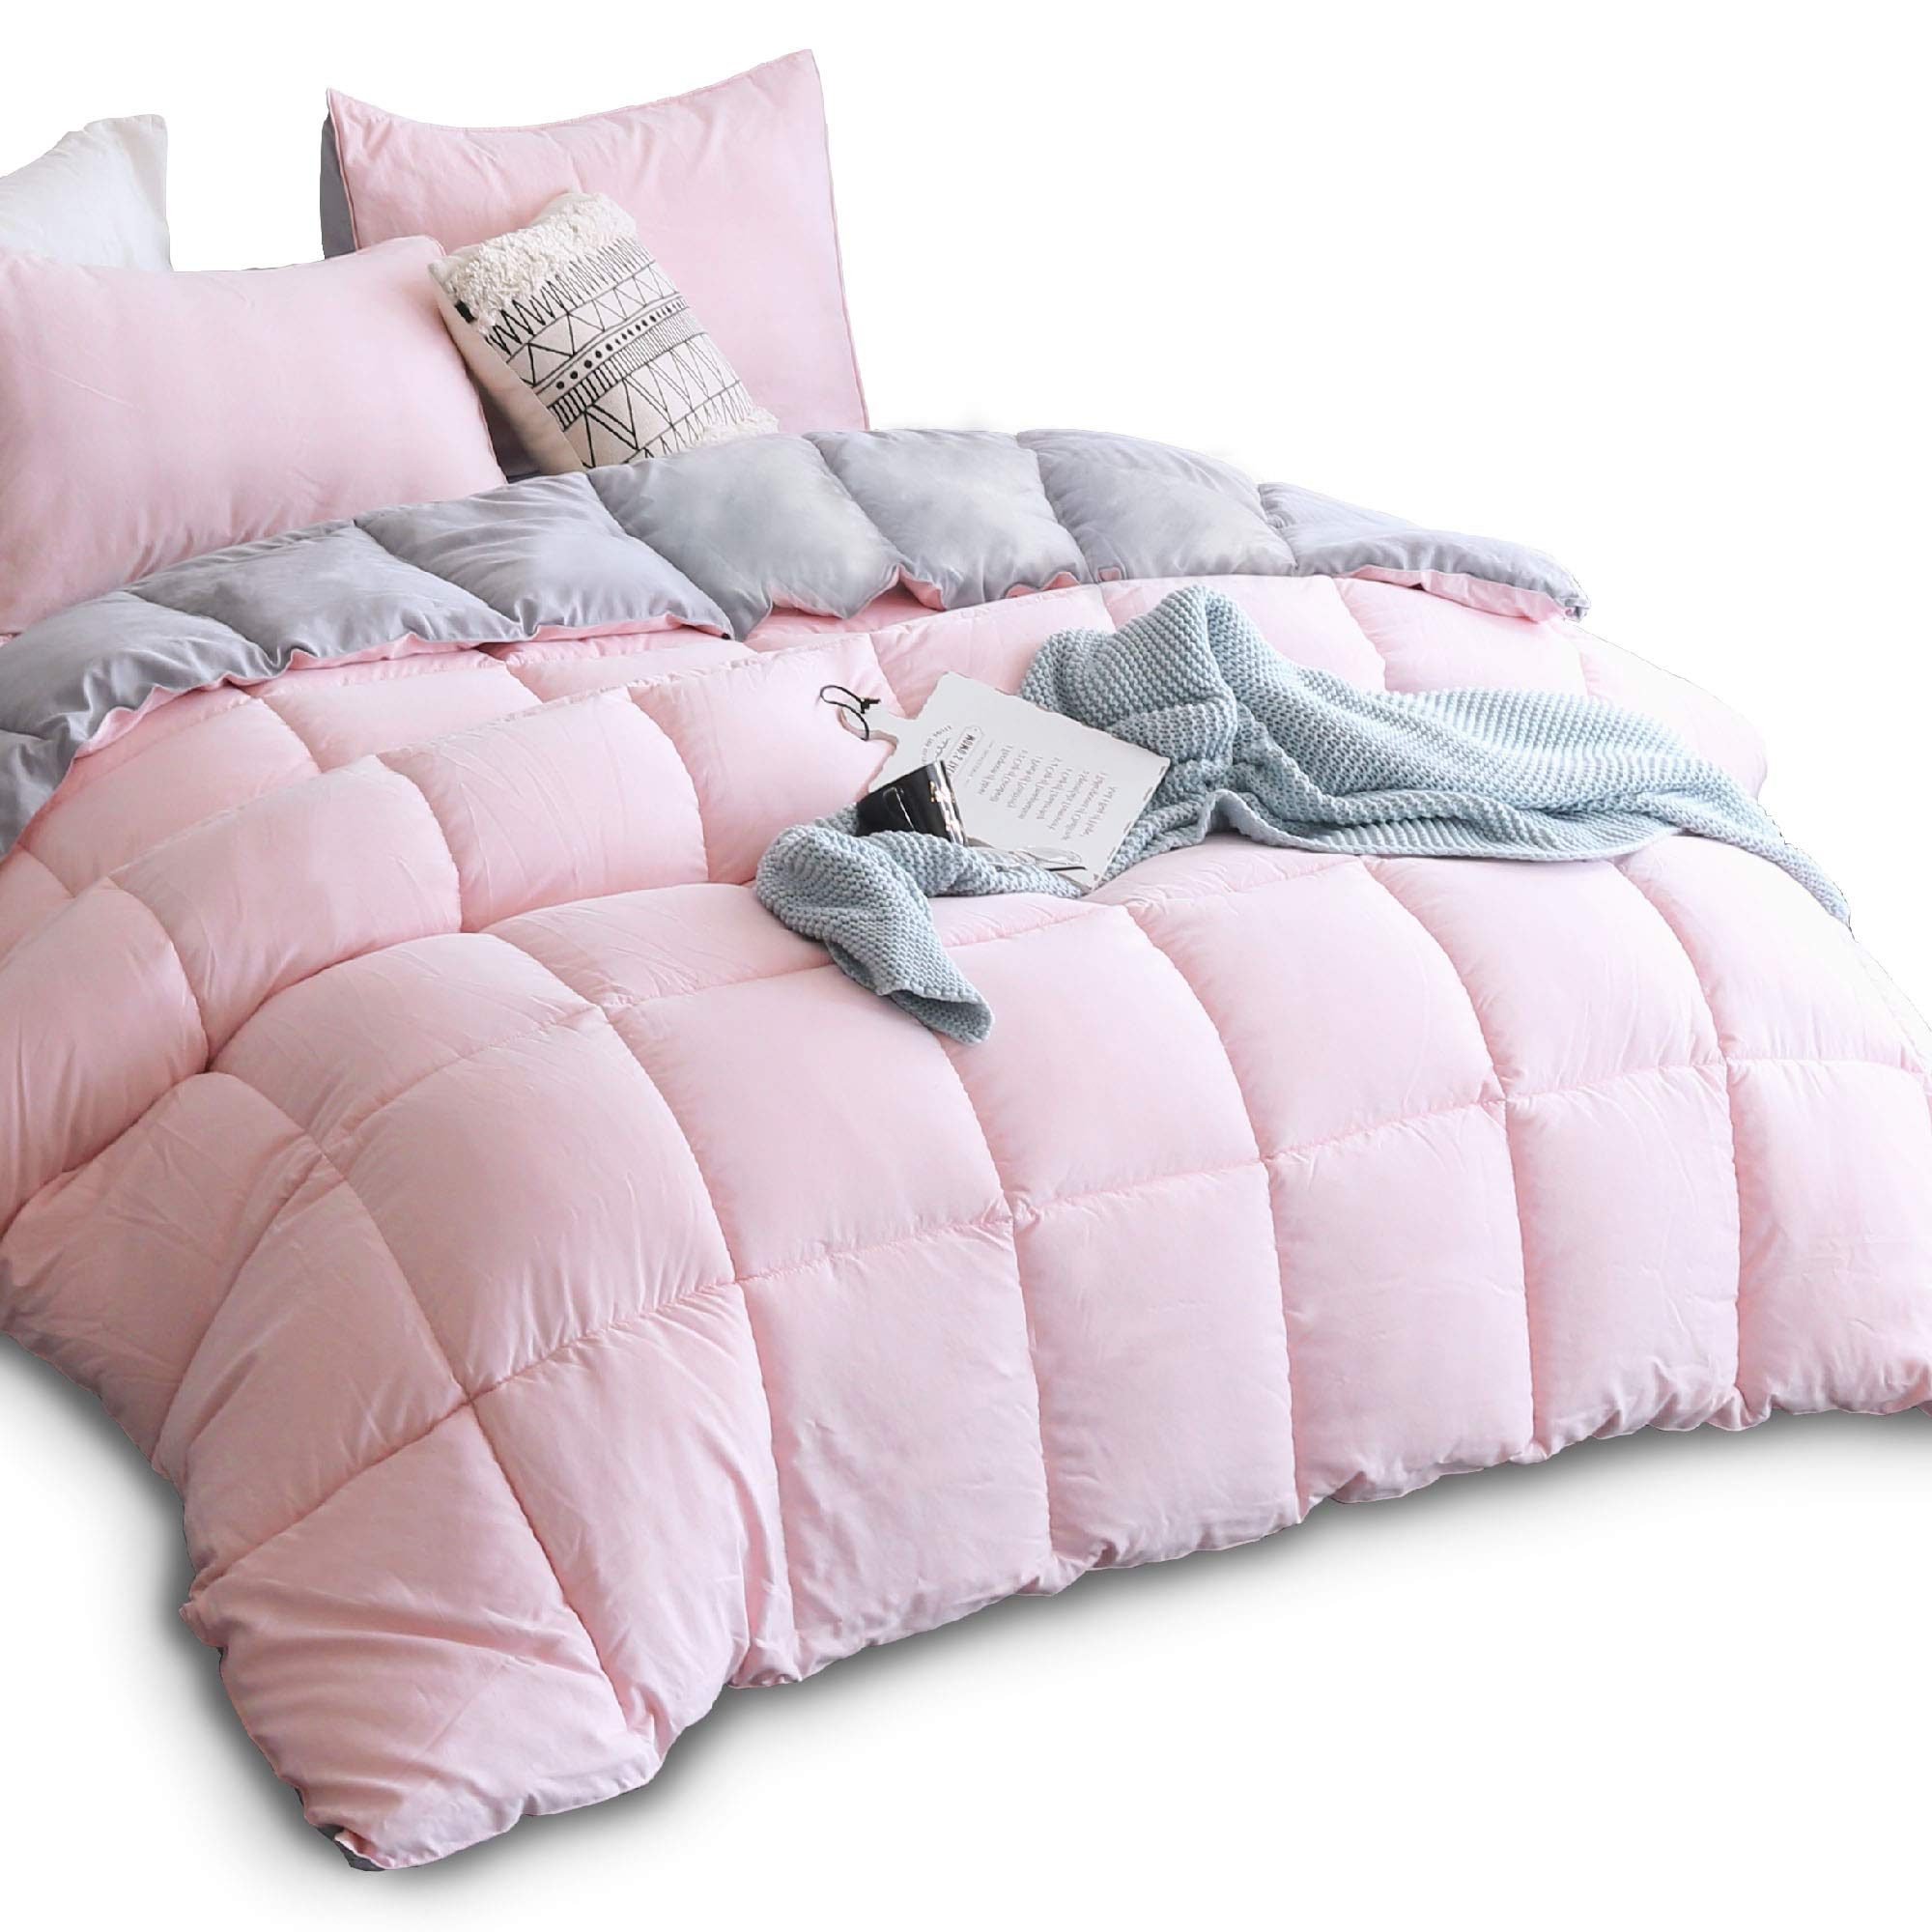 KASENTEX All All Season Down Down Alternative Quilted Comforter Set with Sham(s) - Reversible Ultra Soft Duvet Insert Hypoallergenic Machine Washable, Pink Potpourri/Quartz Silver by KASENTEX (Image #1)